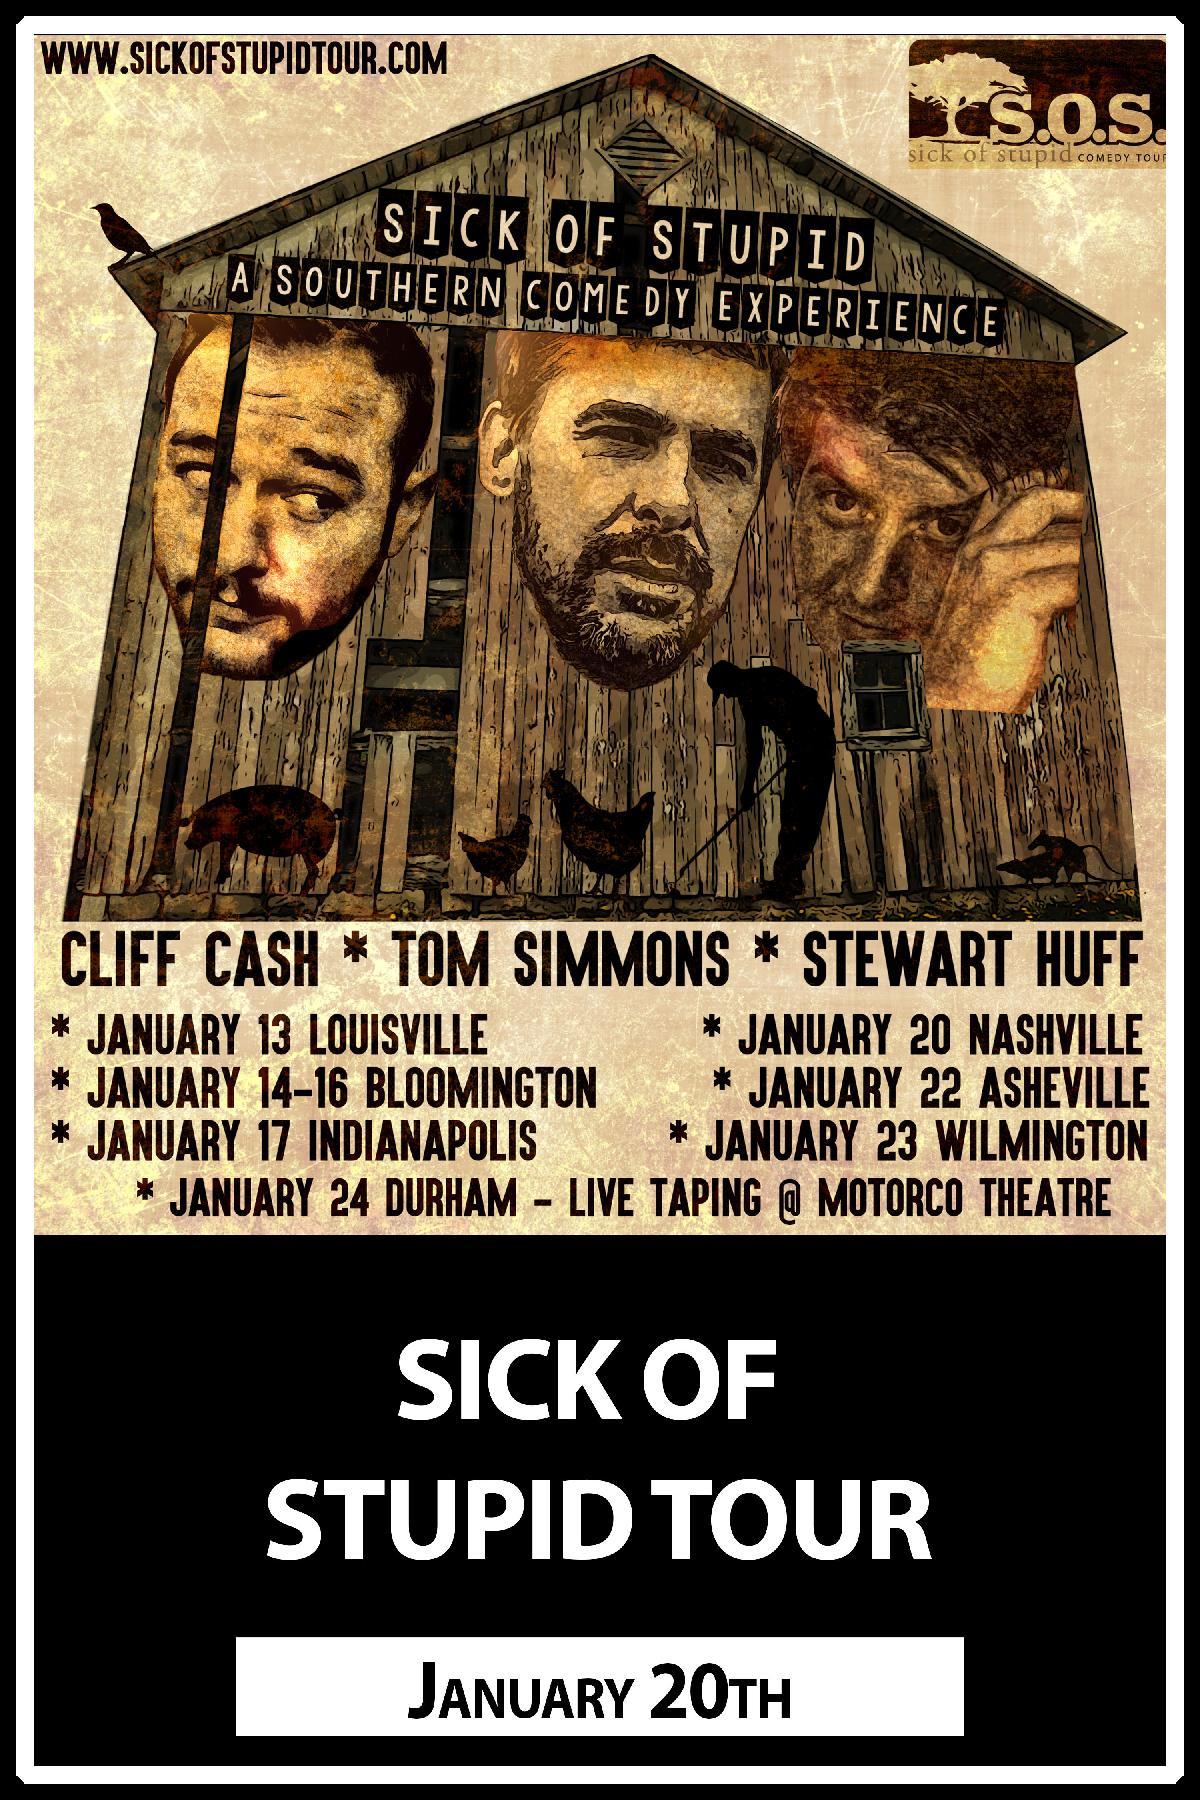 Sick of Stupid Tour starring Cliff Cash, Tom Simmons and Stewart Huff live at Zanies Comedy Club Nashville January 20, 2016